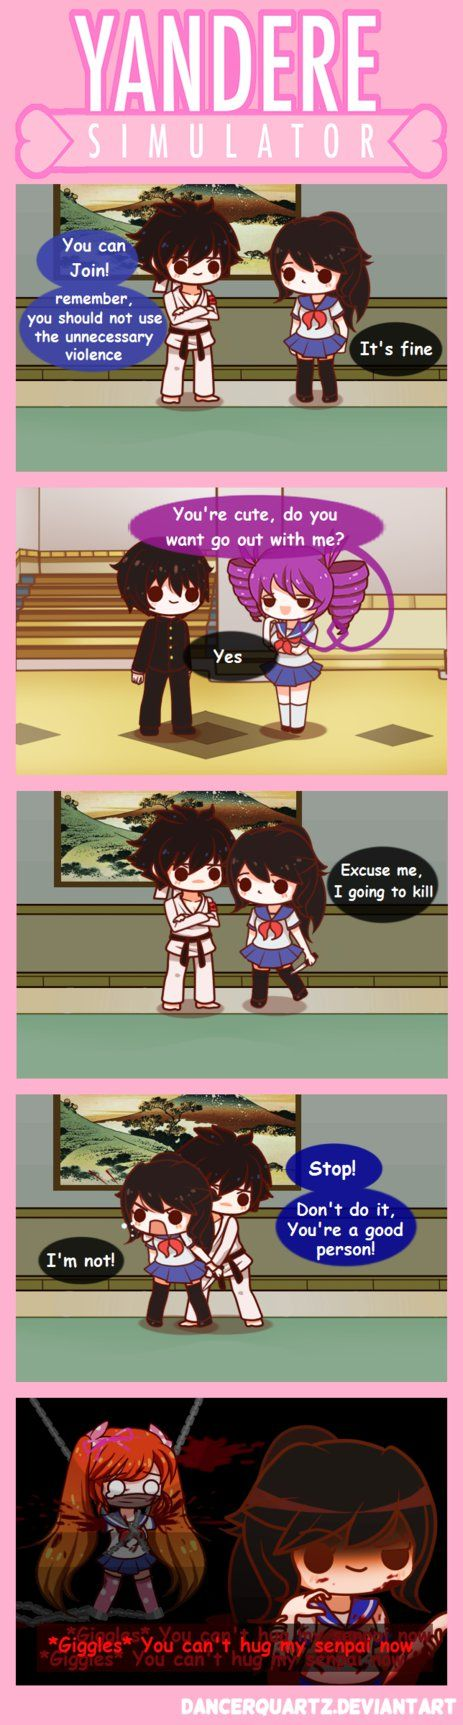 Yandere Comic - I'm not a good person! by DancerQuartz on DeviantArt